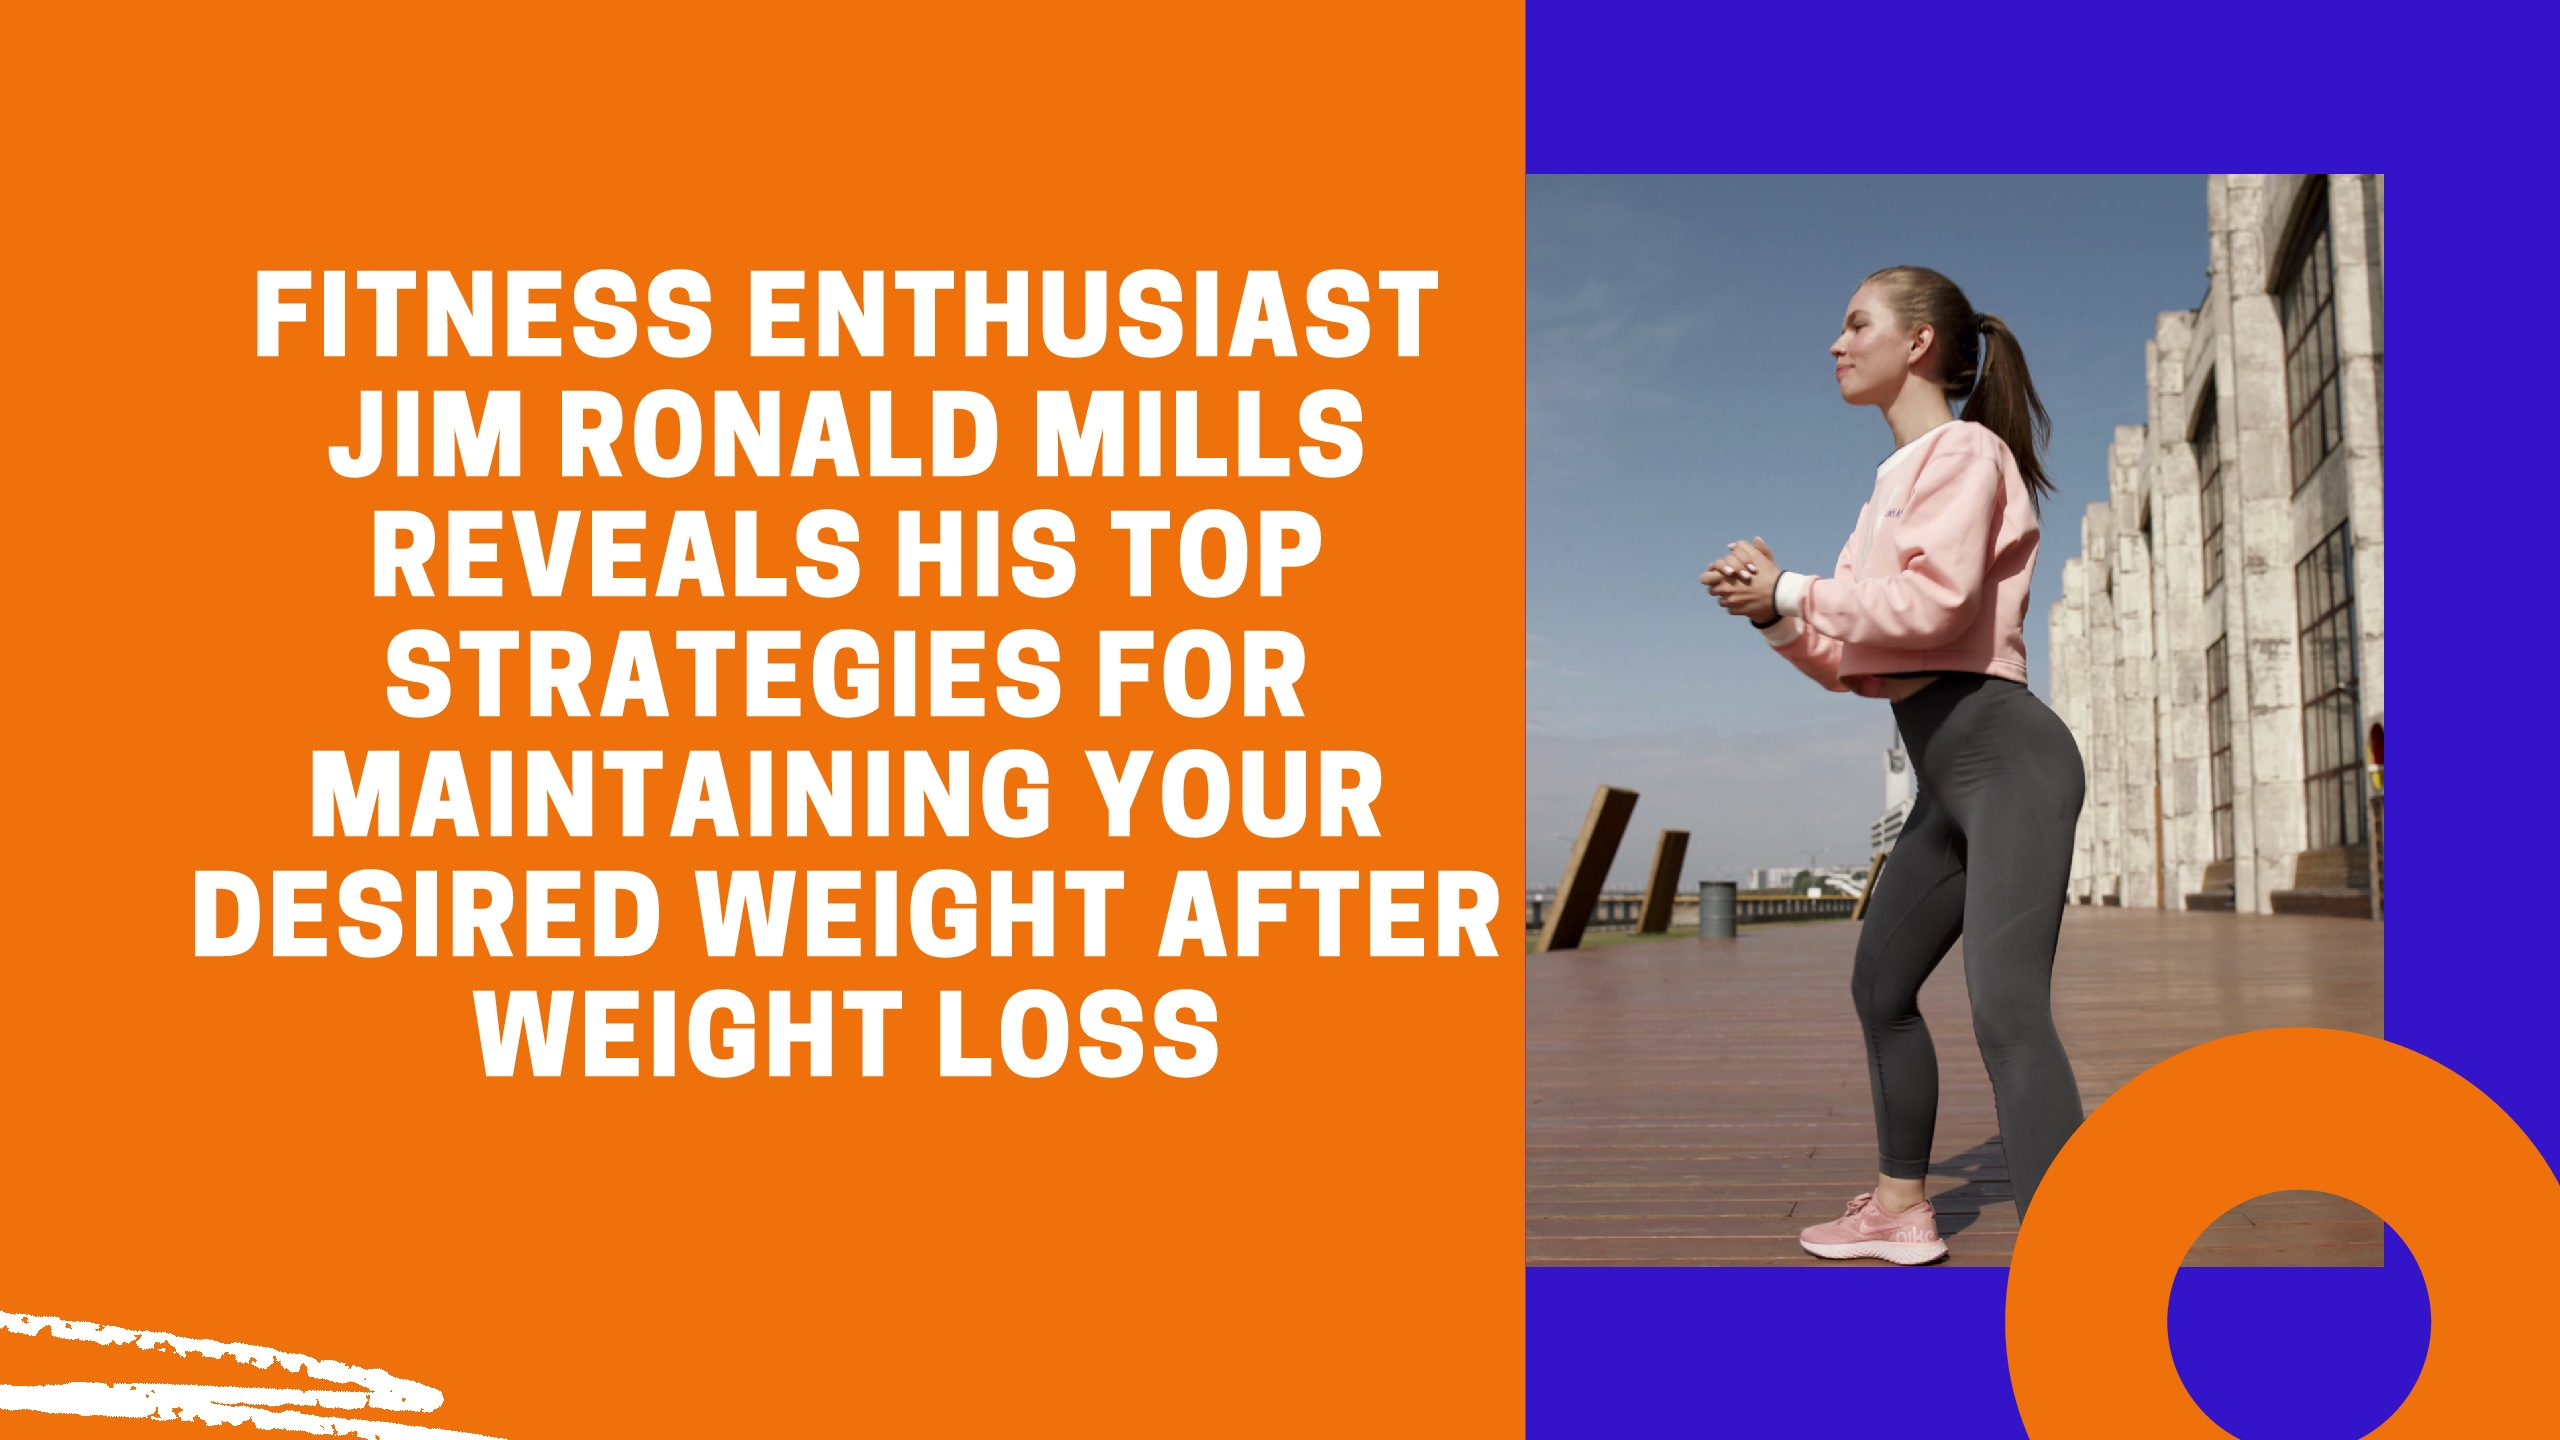 Fitness Enthusiast Jim Ronald Mills Reveals His Top Strategies for Maintaining Your Desired Weight After Weight Loss